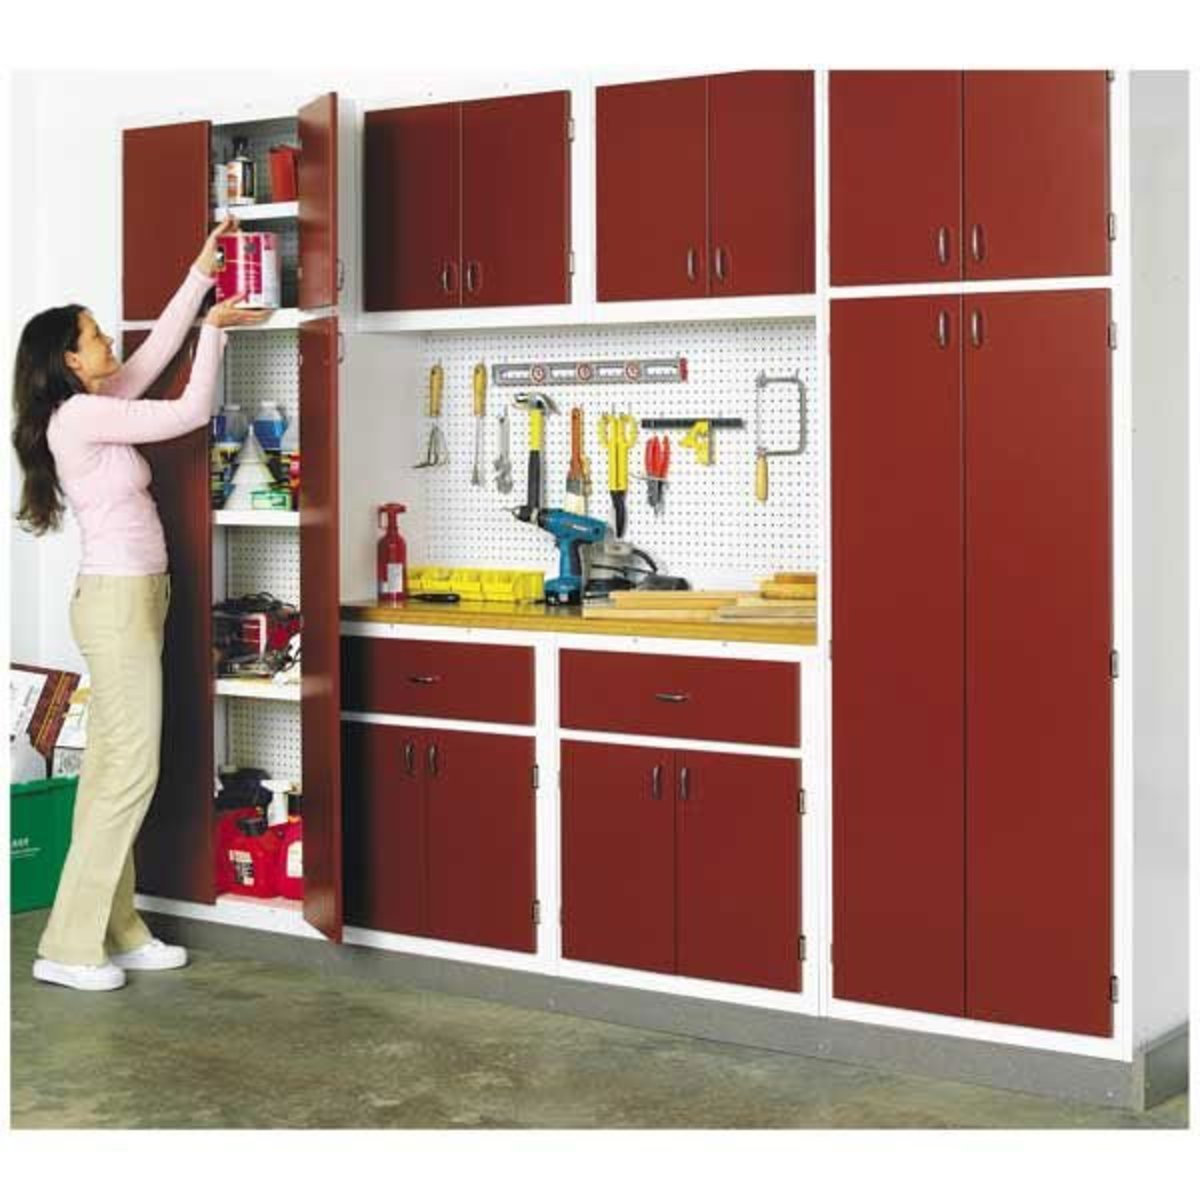 Easy Garage Cabinets Plans: Woodworking Project Paper Plan To Build